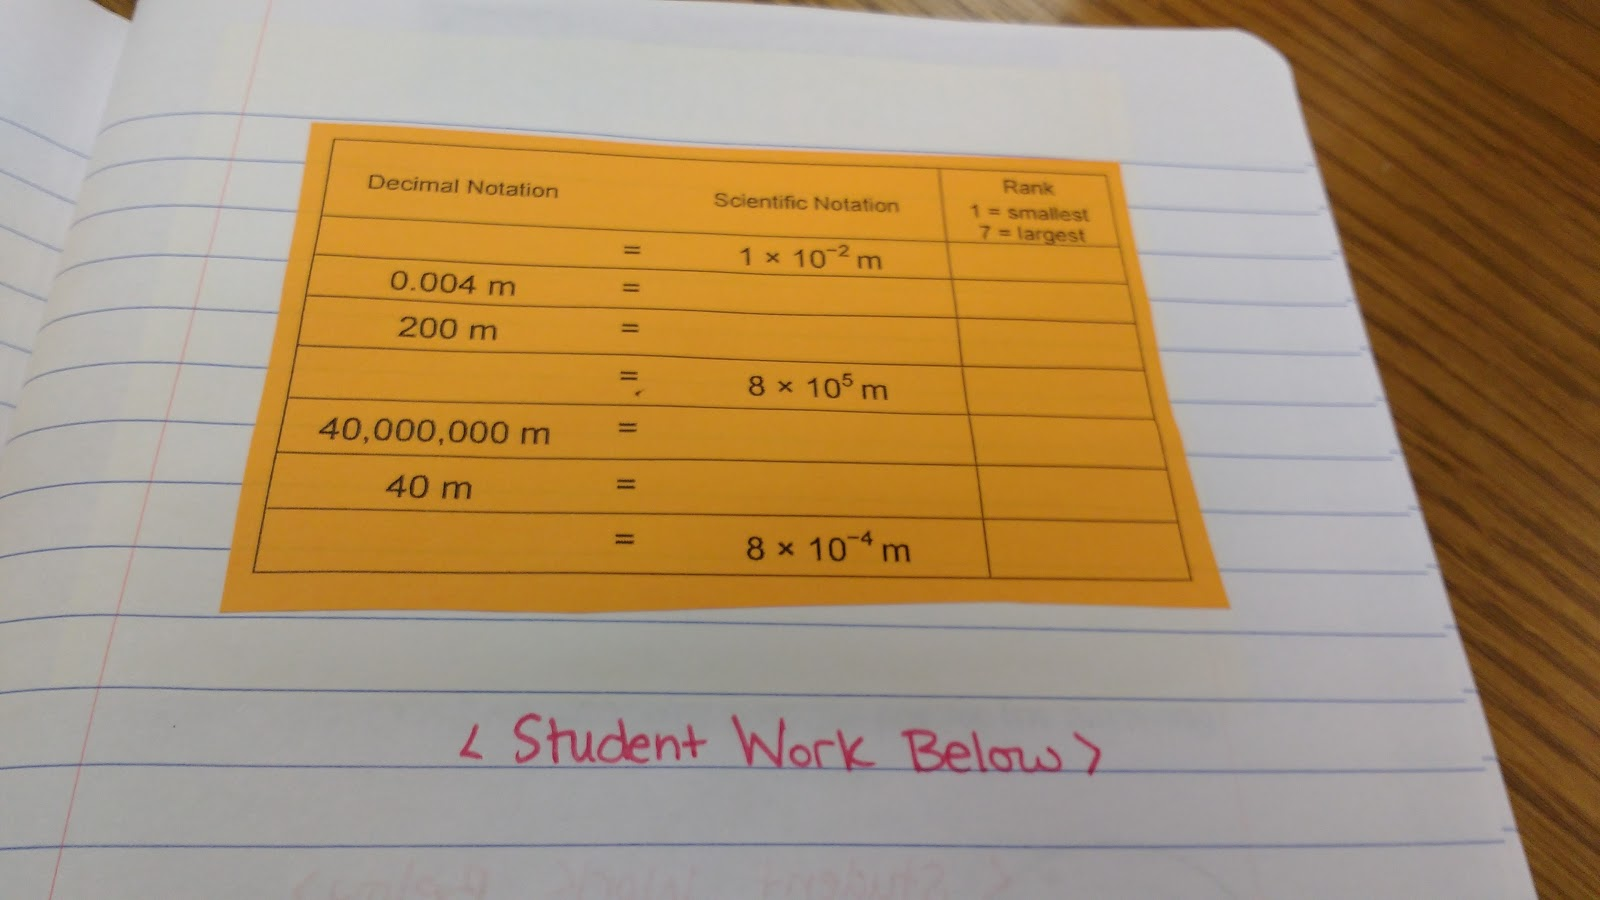 Scientific Notation Ordering Cards